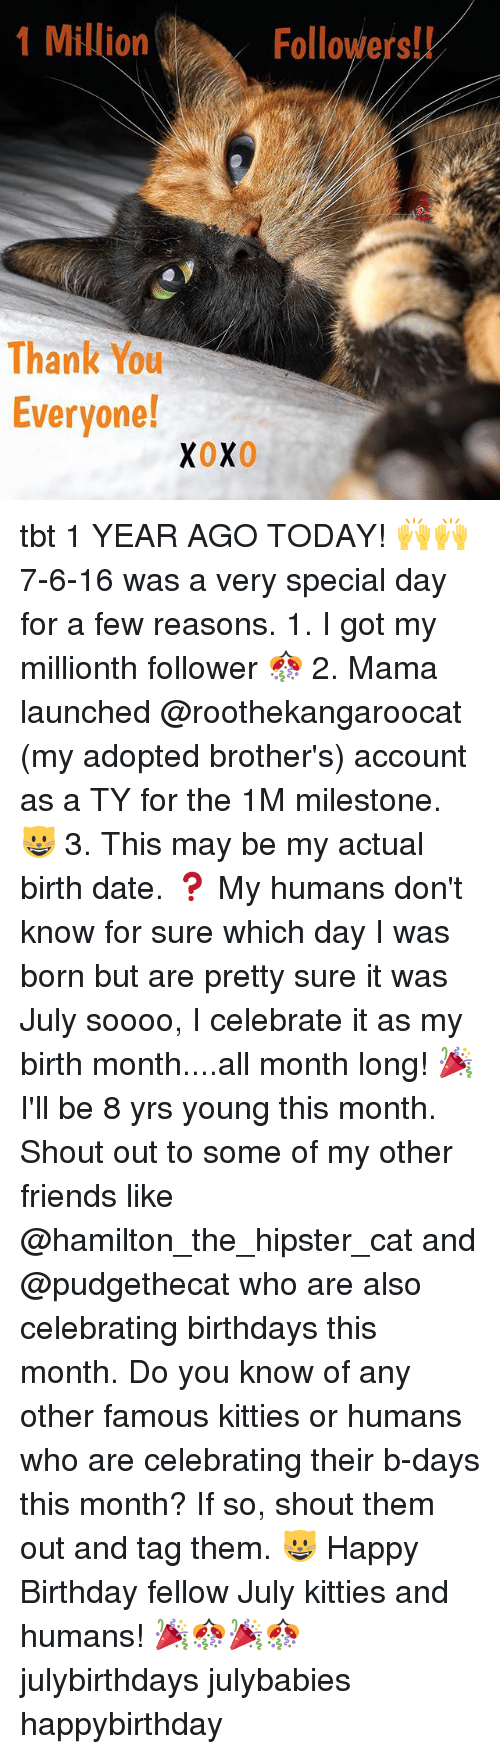 Birthday, Friends, and Hipster: 1 Million  Followers!!  Thank You  Everyone!  XOX0 tbt 1 YEAR AGO TODAY! 🙌🙌 7-6-16 was a very special day for a few reasons. 1. I got my millionth follower 🎊 2. Mama launched @roothekangaroocat (my adopted brother's) account as a TY for the 1M milestone. 😺 3. This may be my actual birth date. ❓ My humans don't know for sure which day I was born but are pretty sure it was July soooo, I celebrate it as my birth month....all month long! 🎉 I'll be 8 yrs young this month. Shout out to some of my other friends like @hamilton_the_hipster_cat and @pudgethecat who are also celebrating birthdays this month. Do you know of any other famous kitties or humans who are celebrating their b-days this month? If so, shout them out and tag them. 😺 Happy Birthday fellow July kitties and humans! 🎉🎊🎉🎊 julybirthdays julybabies happybirthday